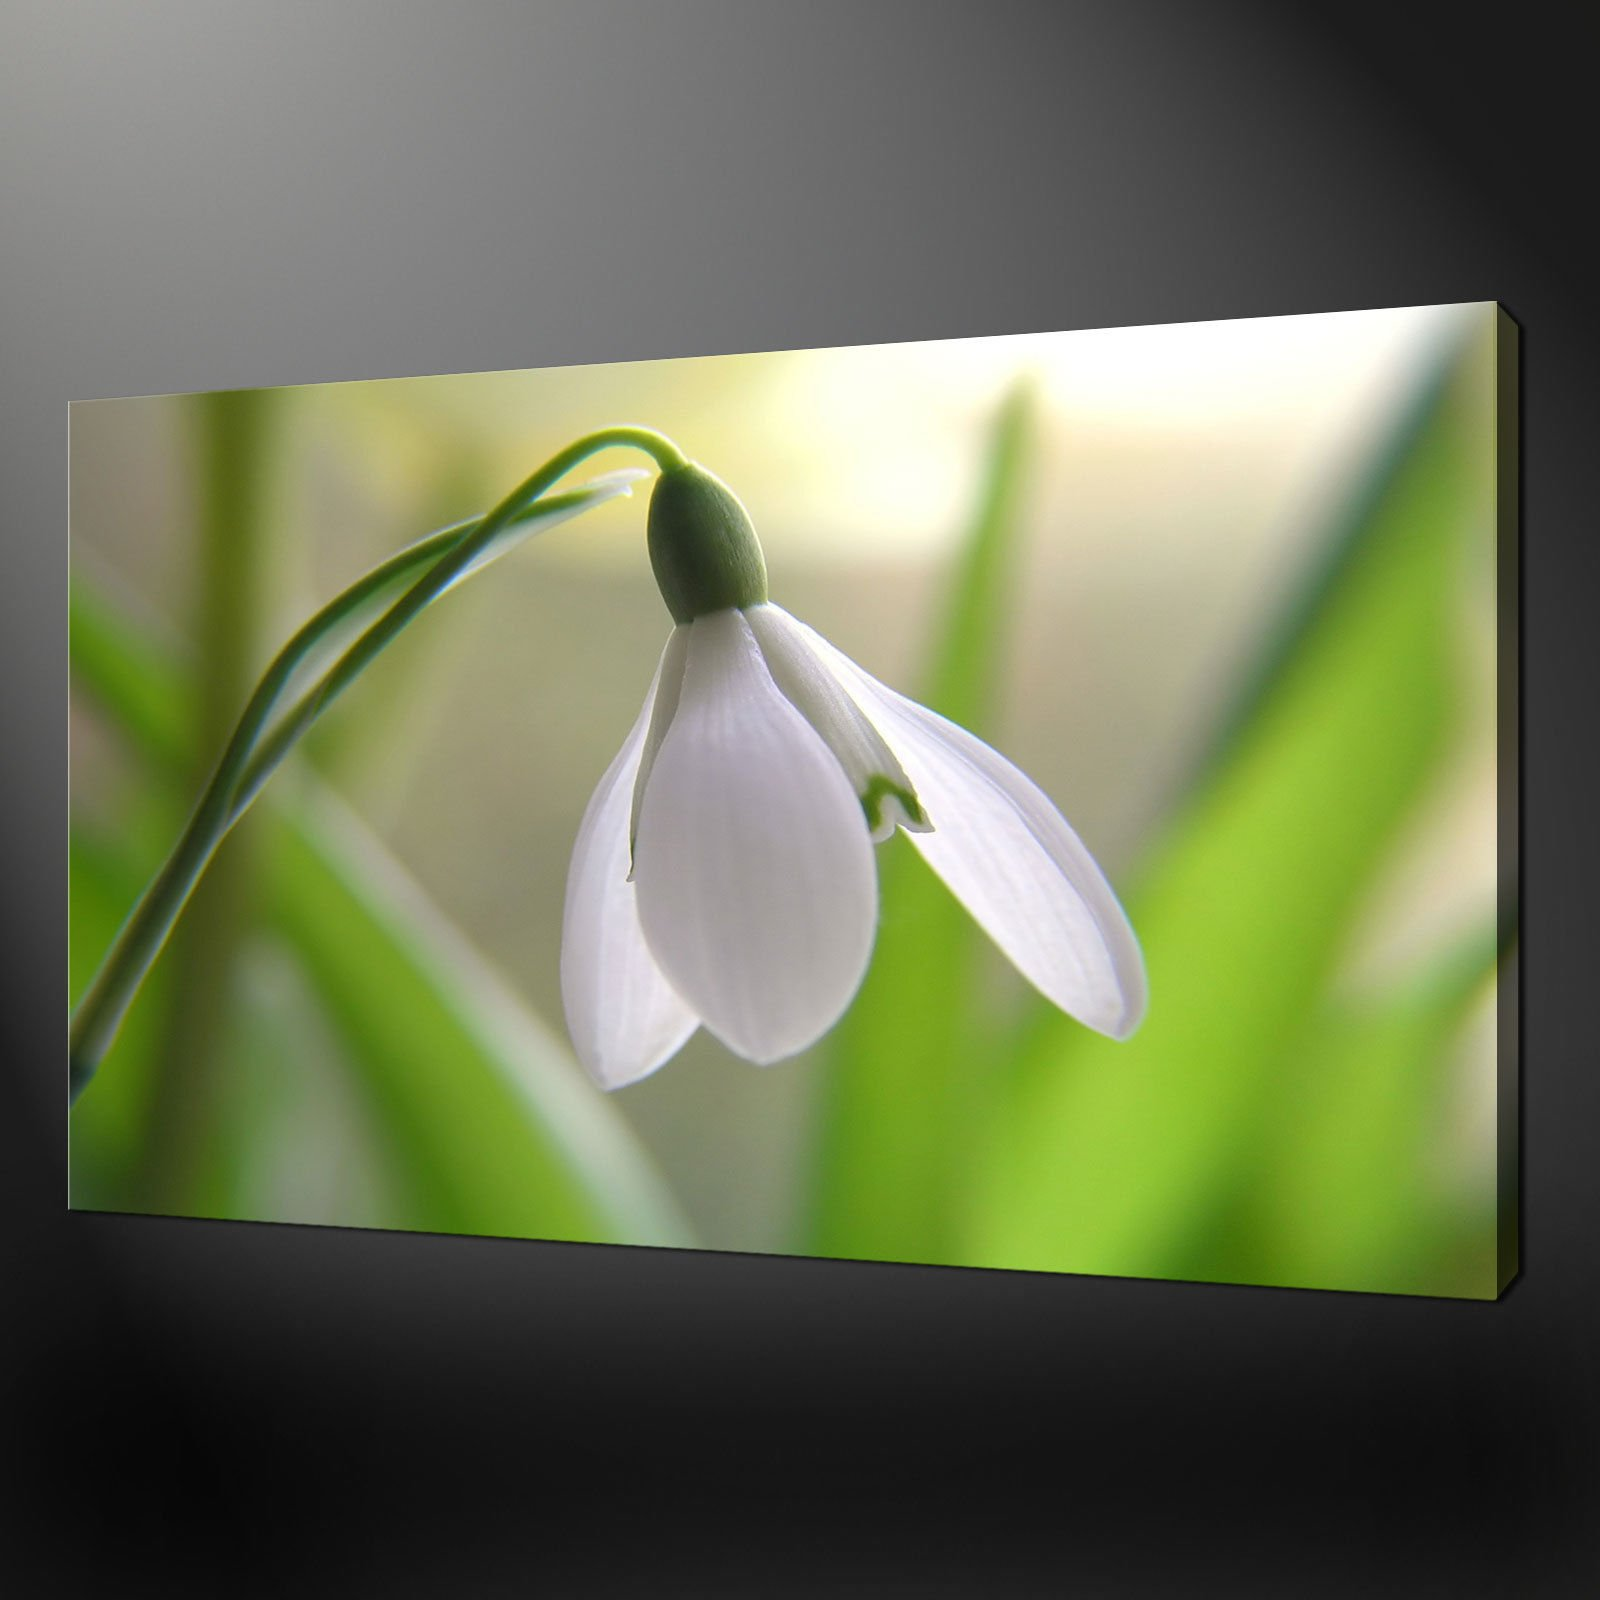 Canvas print pictures high quality handmade free next day delivery white flower canvas wall art pictures prints 30 x 20 inch free uk pp mightylinksfo